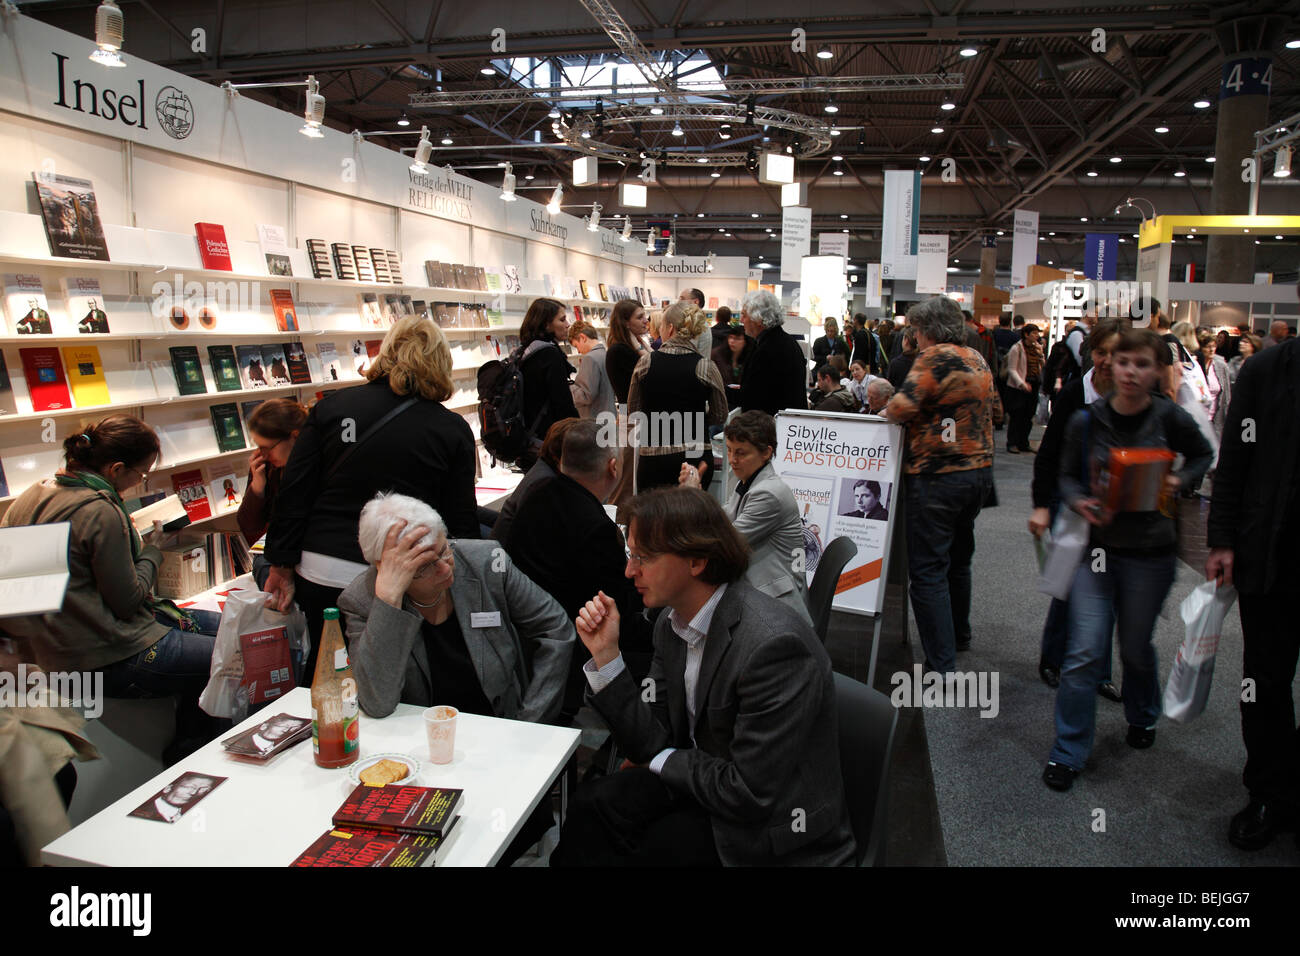 publisher Insel Verlag at the book fair 2009 in Leipzig, Germany - Stock Image